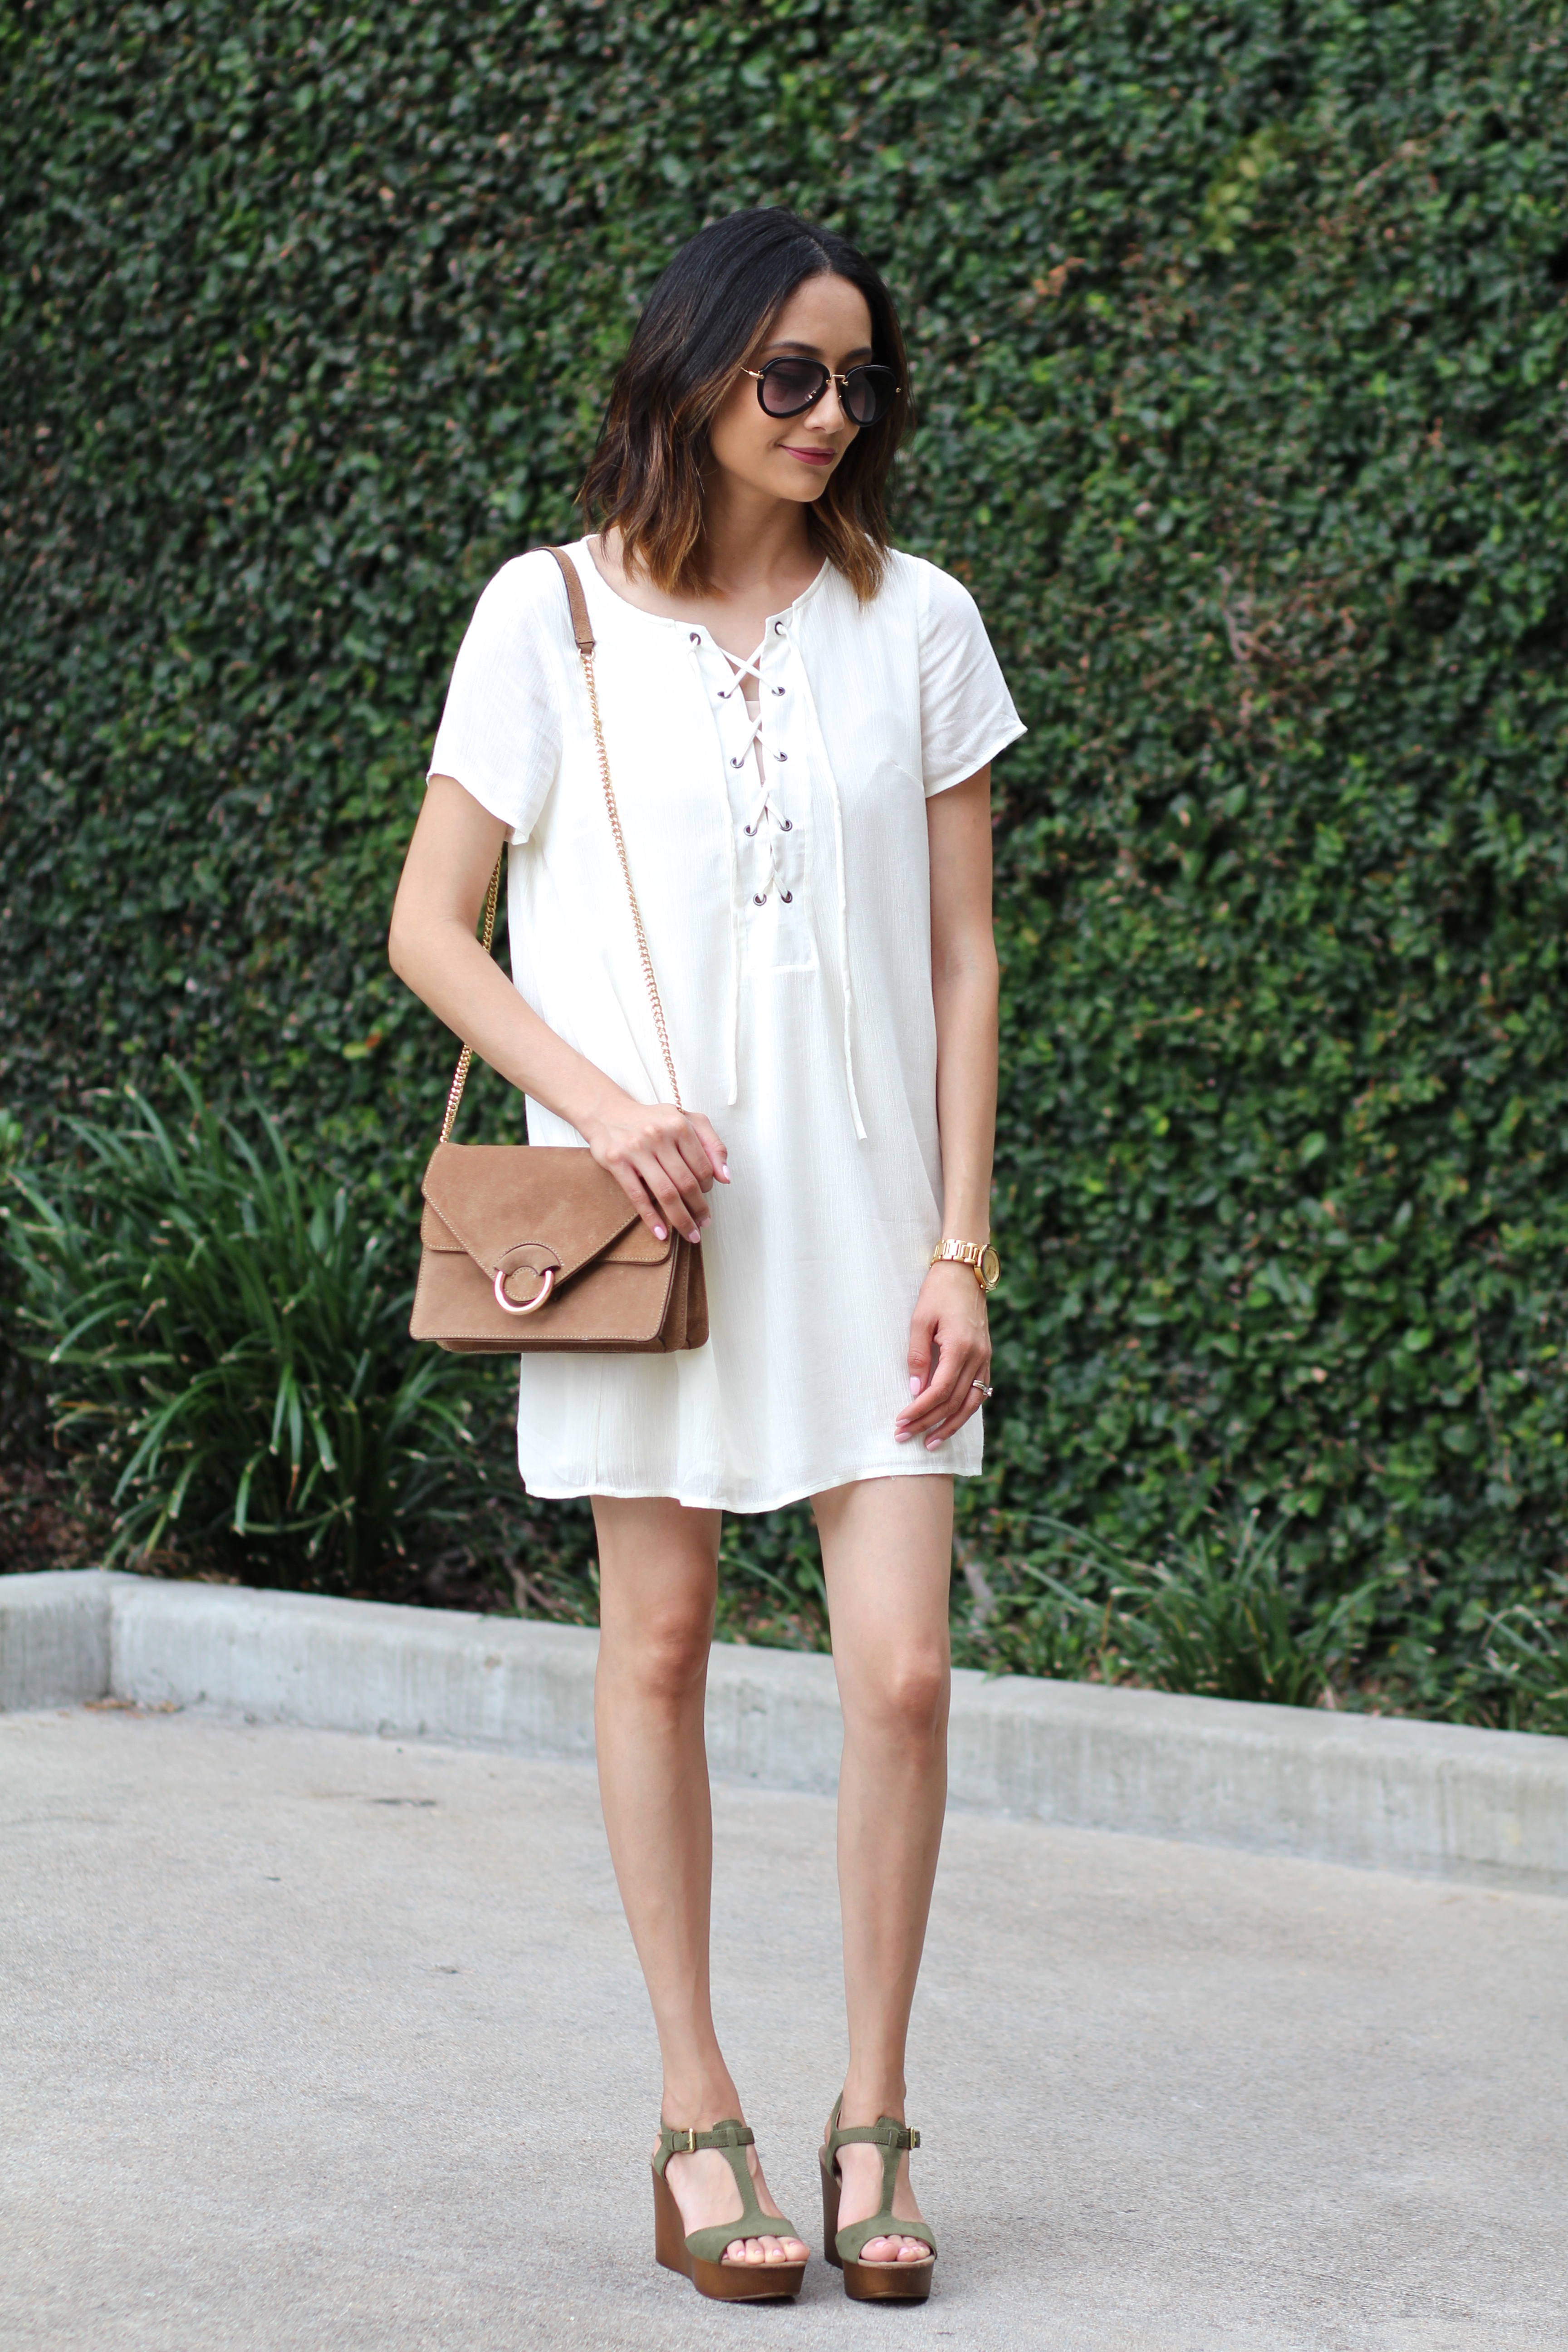 Lace up dress with platform wedges